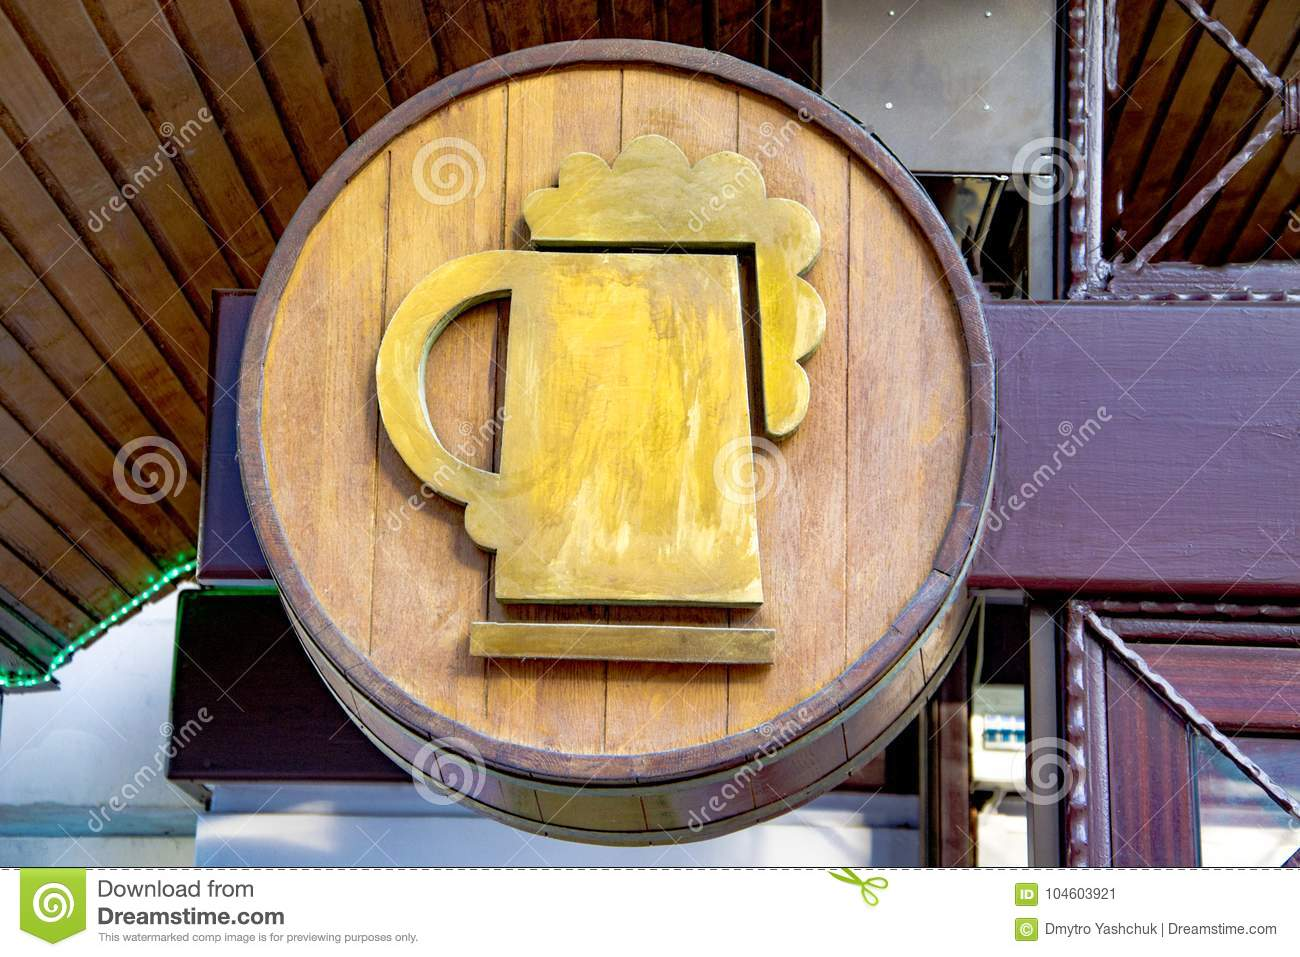 Beer barrel and beer glass is suspended over